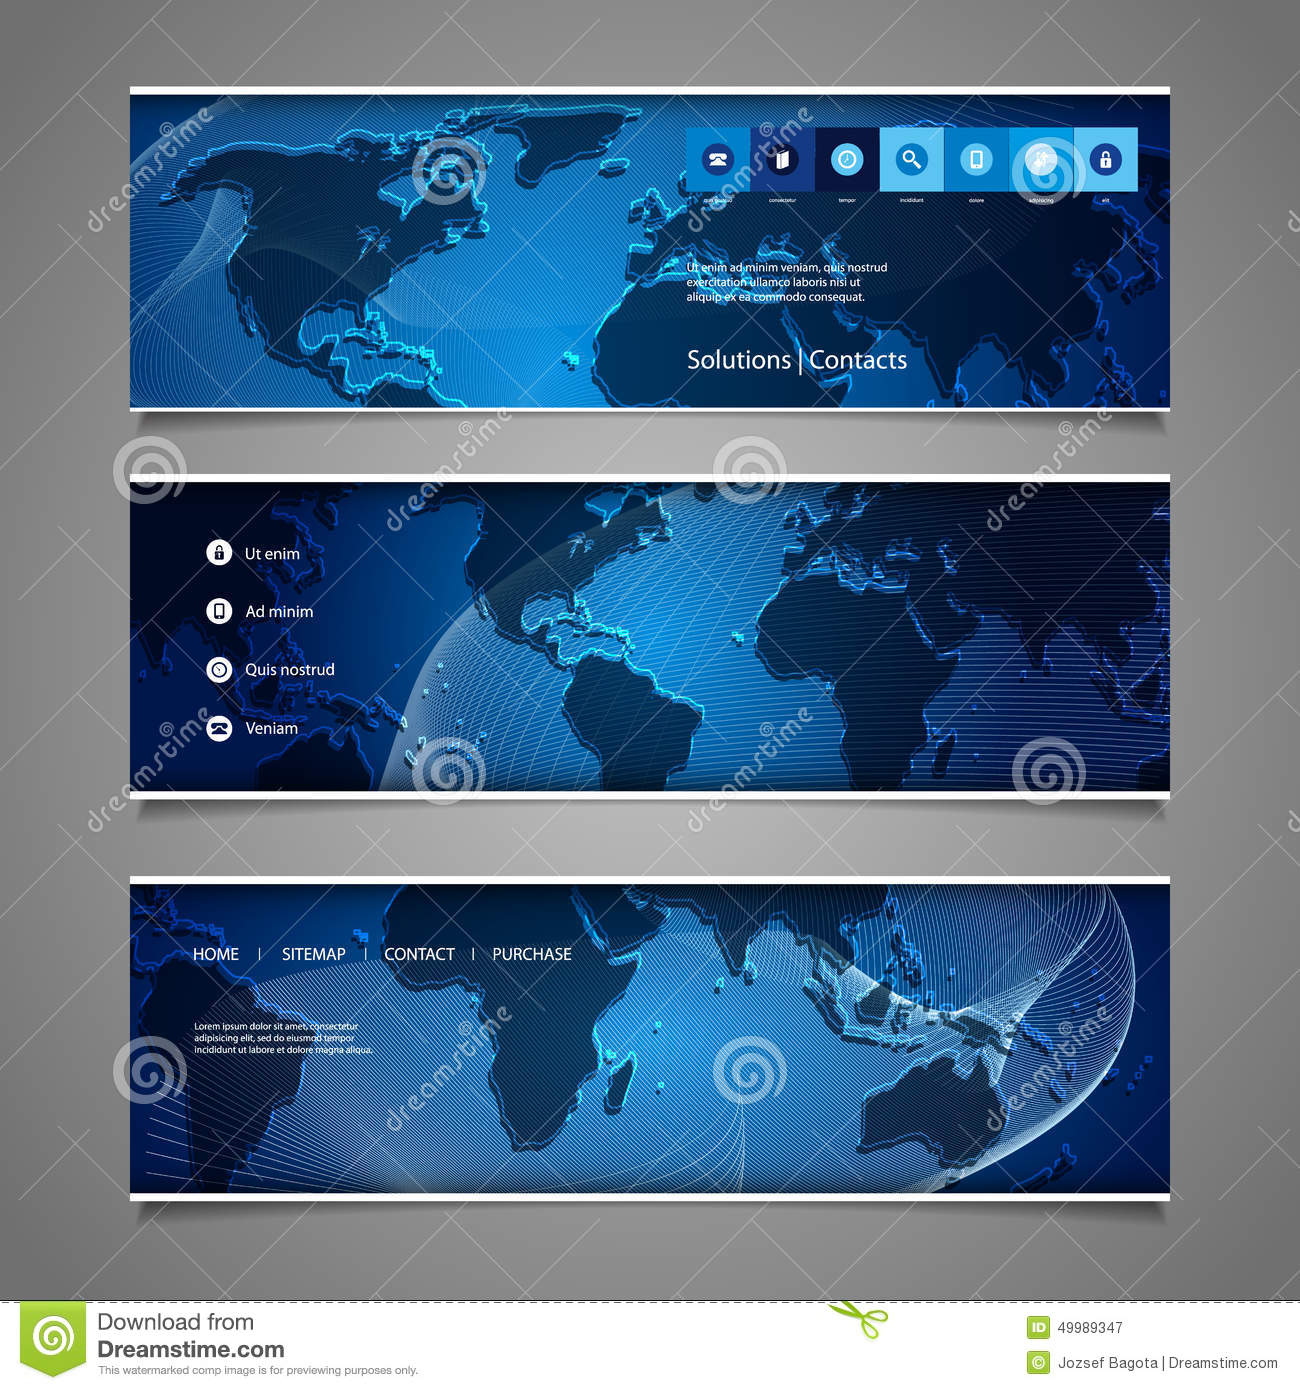 Web design elements header designs with world map stock vector web design elements header designs with world map gumiabroncs Choice Image